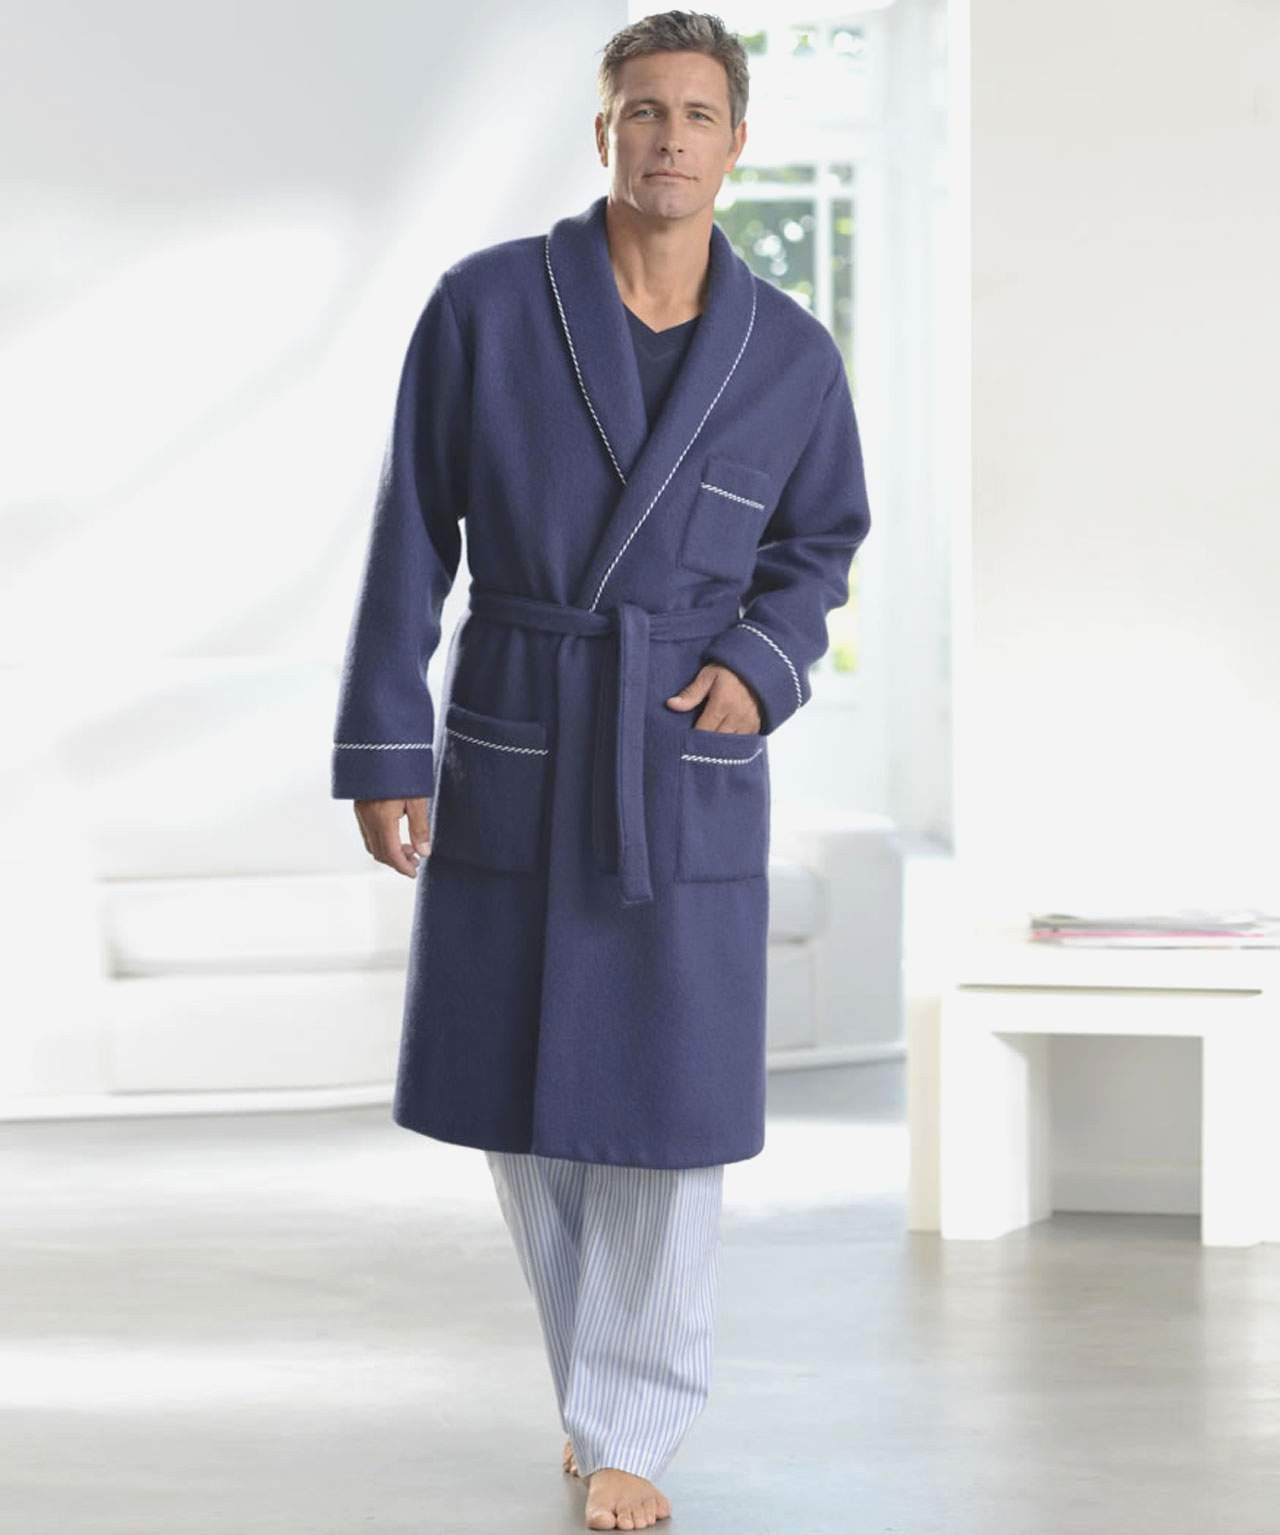 Awesome Robe De Chambre Chaude Pour Homme Coat Fashion Trench Coat